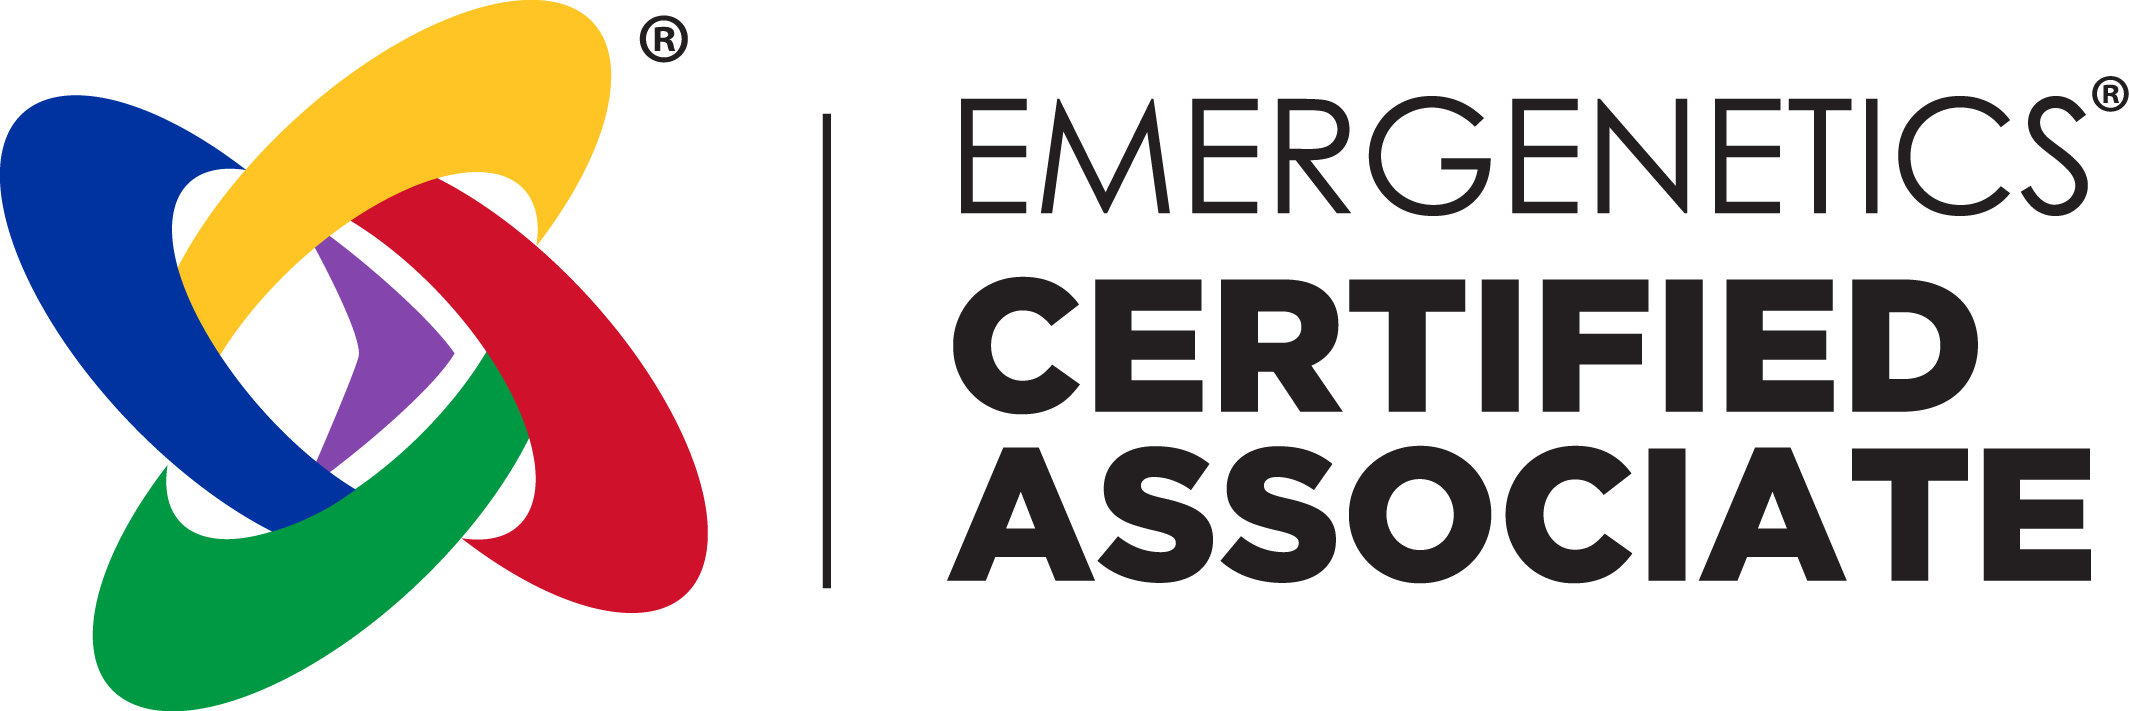 EG_Certified_Associate_Logo_Full_Colour.png